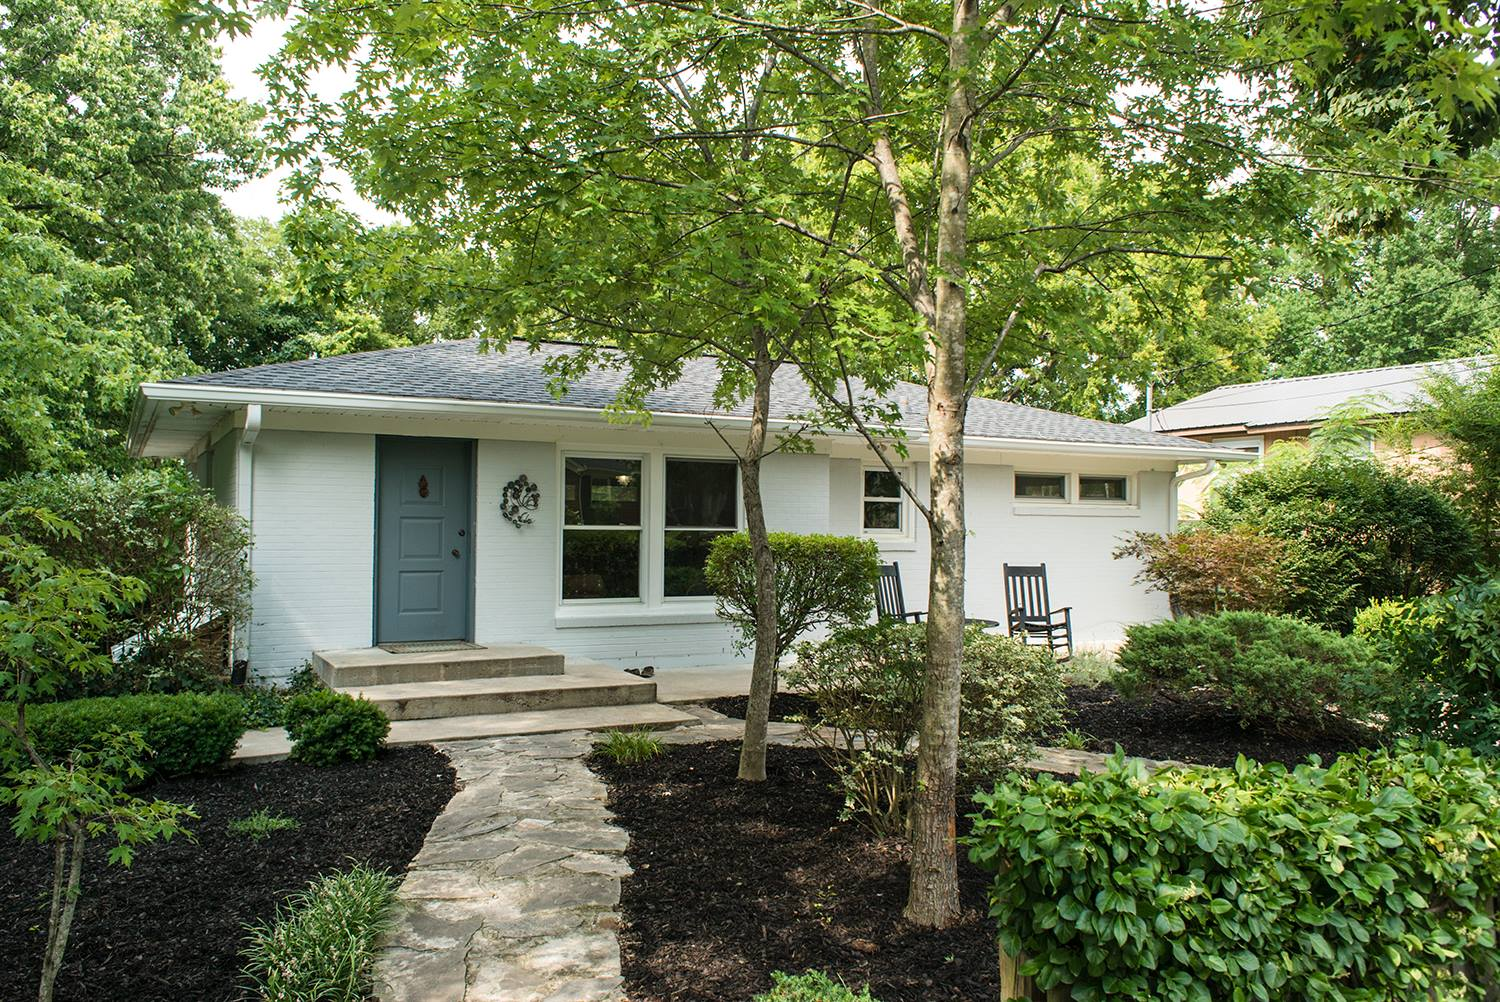 308 Everbright Avenue, Franklin SOLD - Updated ranch home on double lot walking distance to downtown.